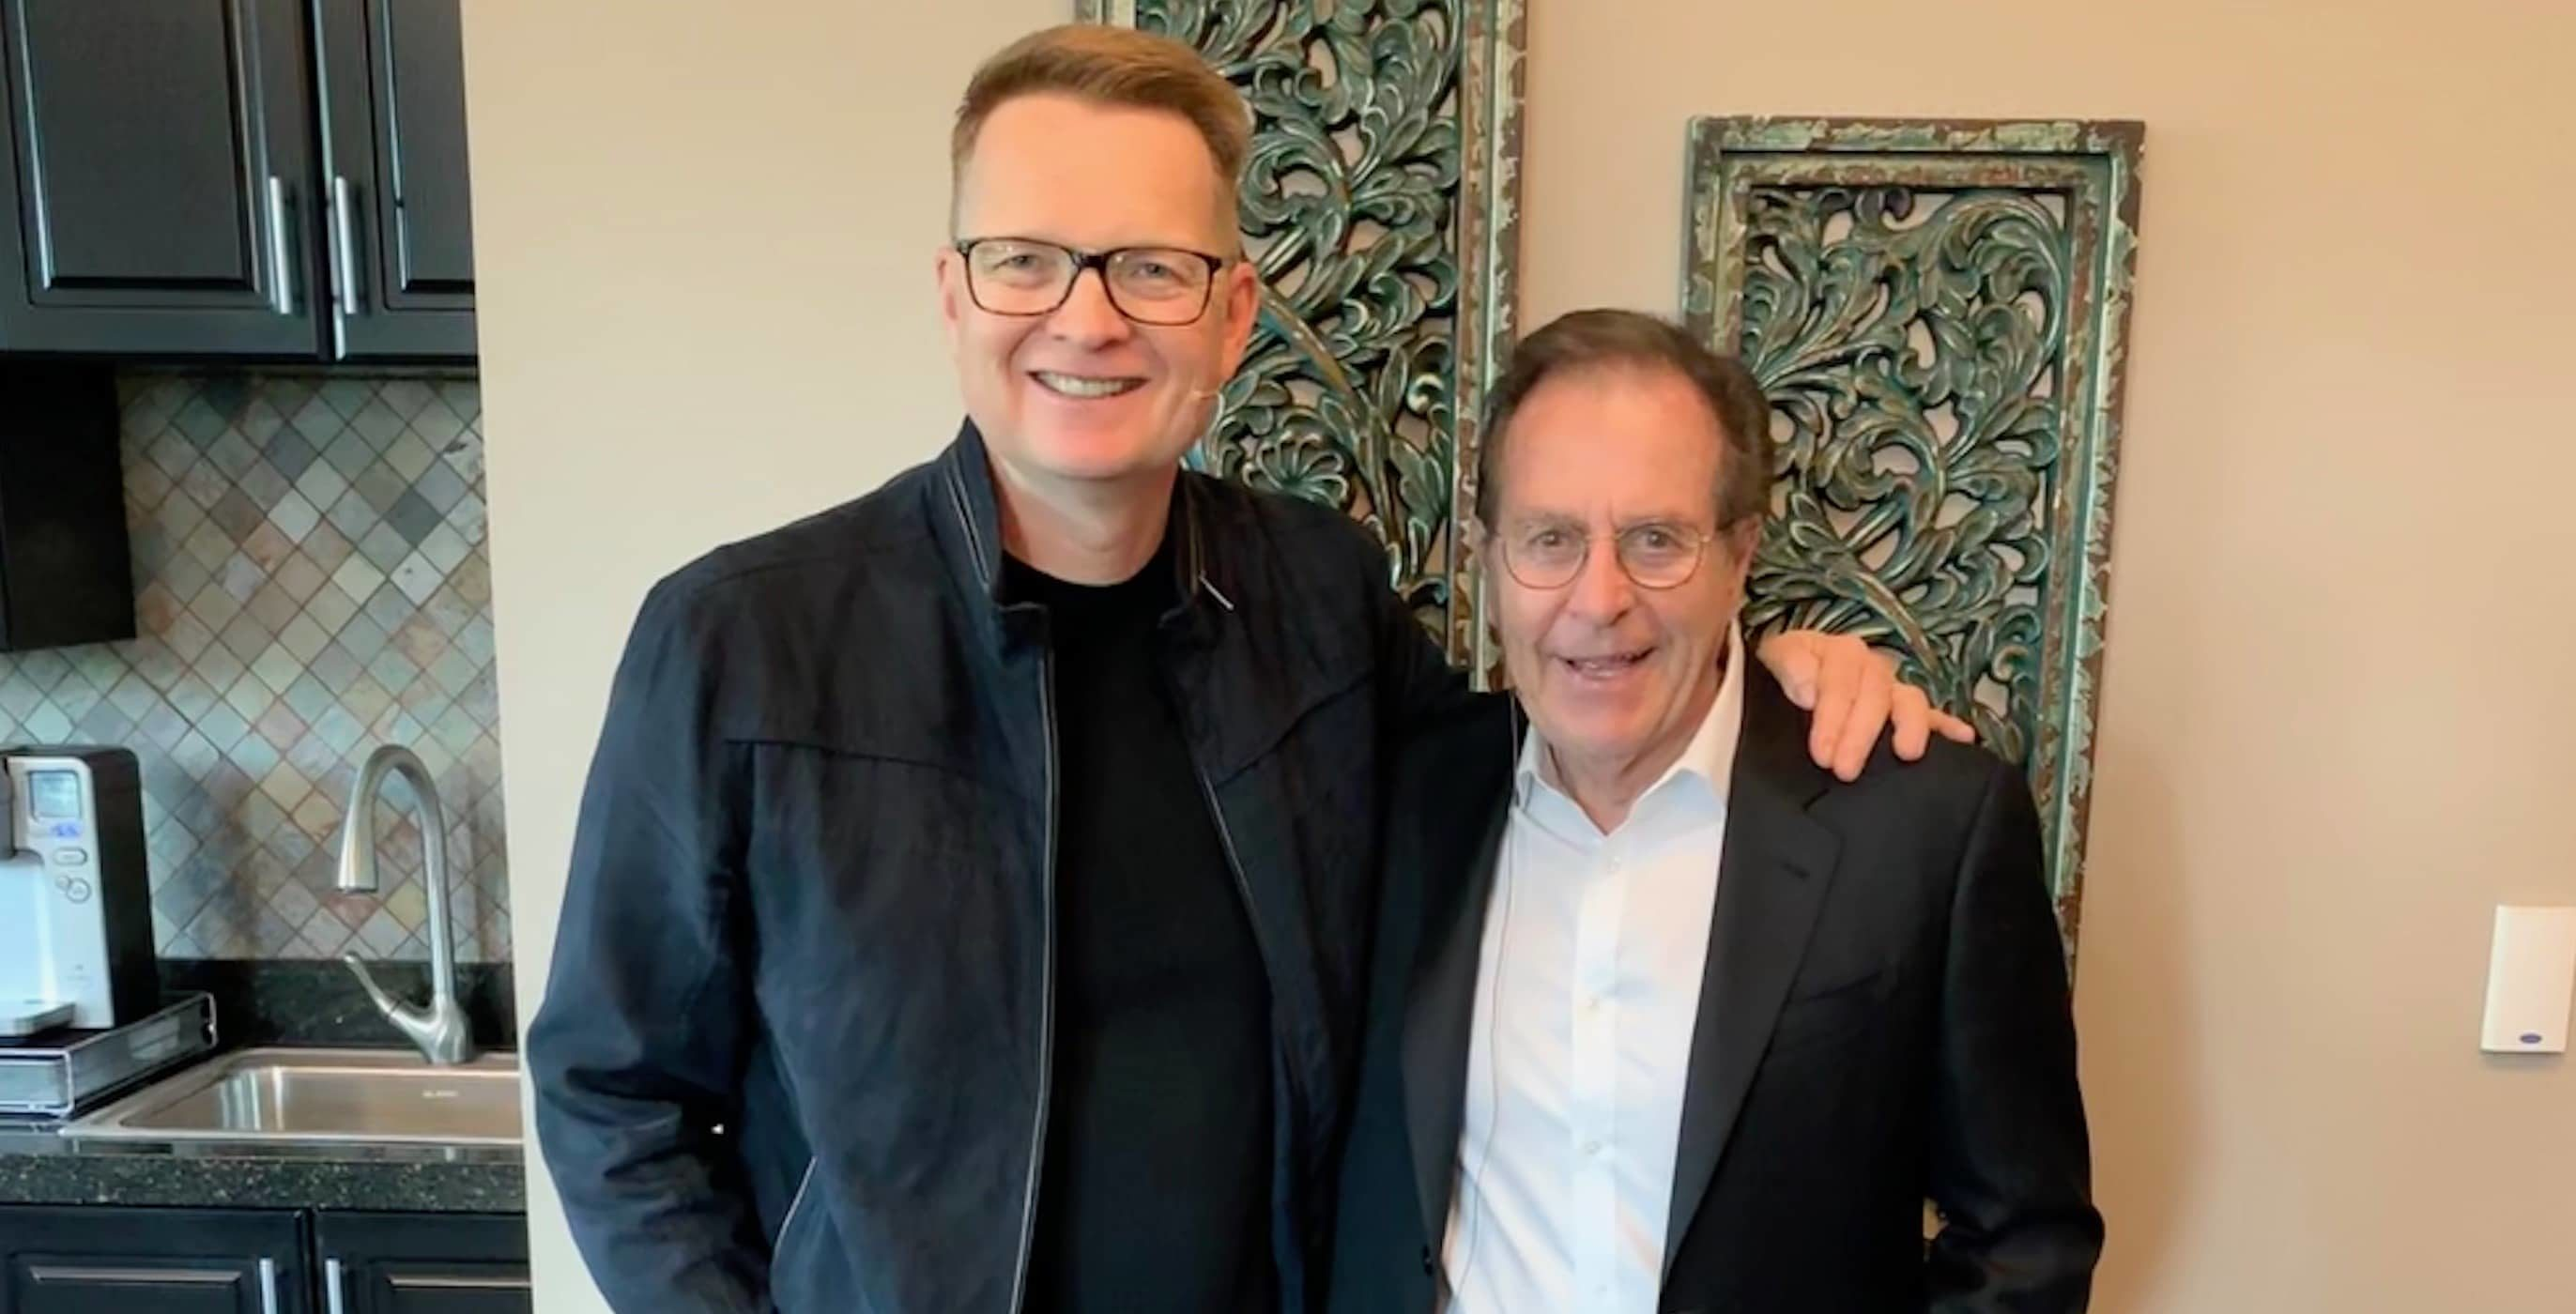 CNLP 263: Horst Schulze with Lessons From the Ritz-Carlton on Coaching the Best From a Team When You Can't Pay Top Wages,  What Guests Really Want, How to Satisfy a Customer and What To Do With Customer Complaints